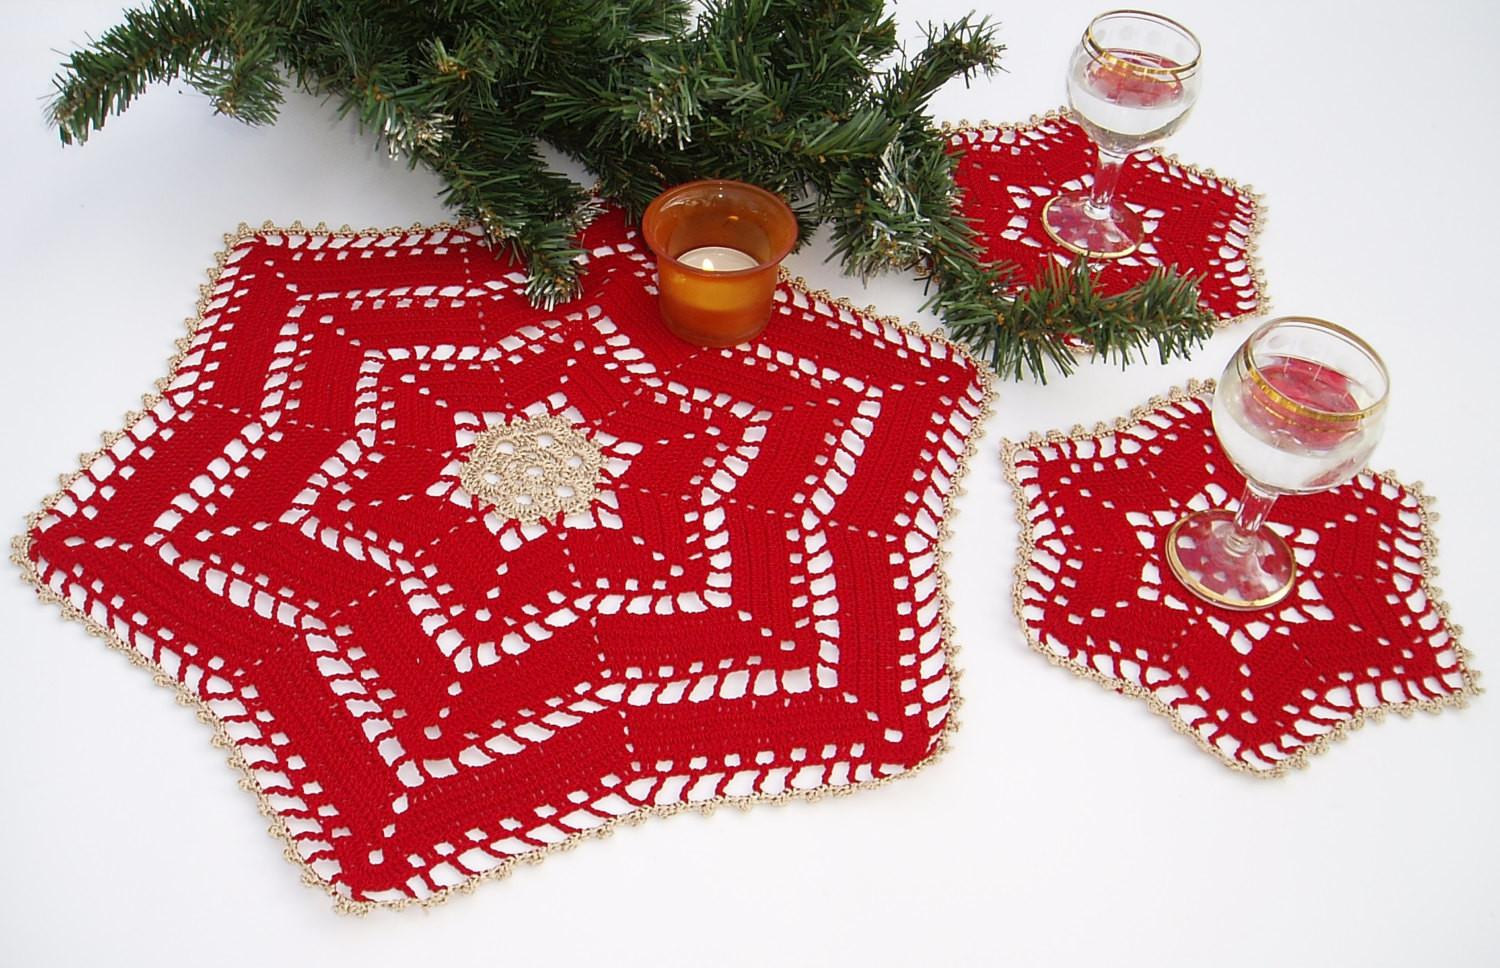 Lace Crochet Christmas Table Decoration